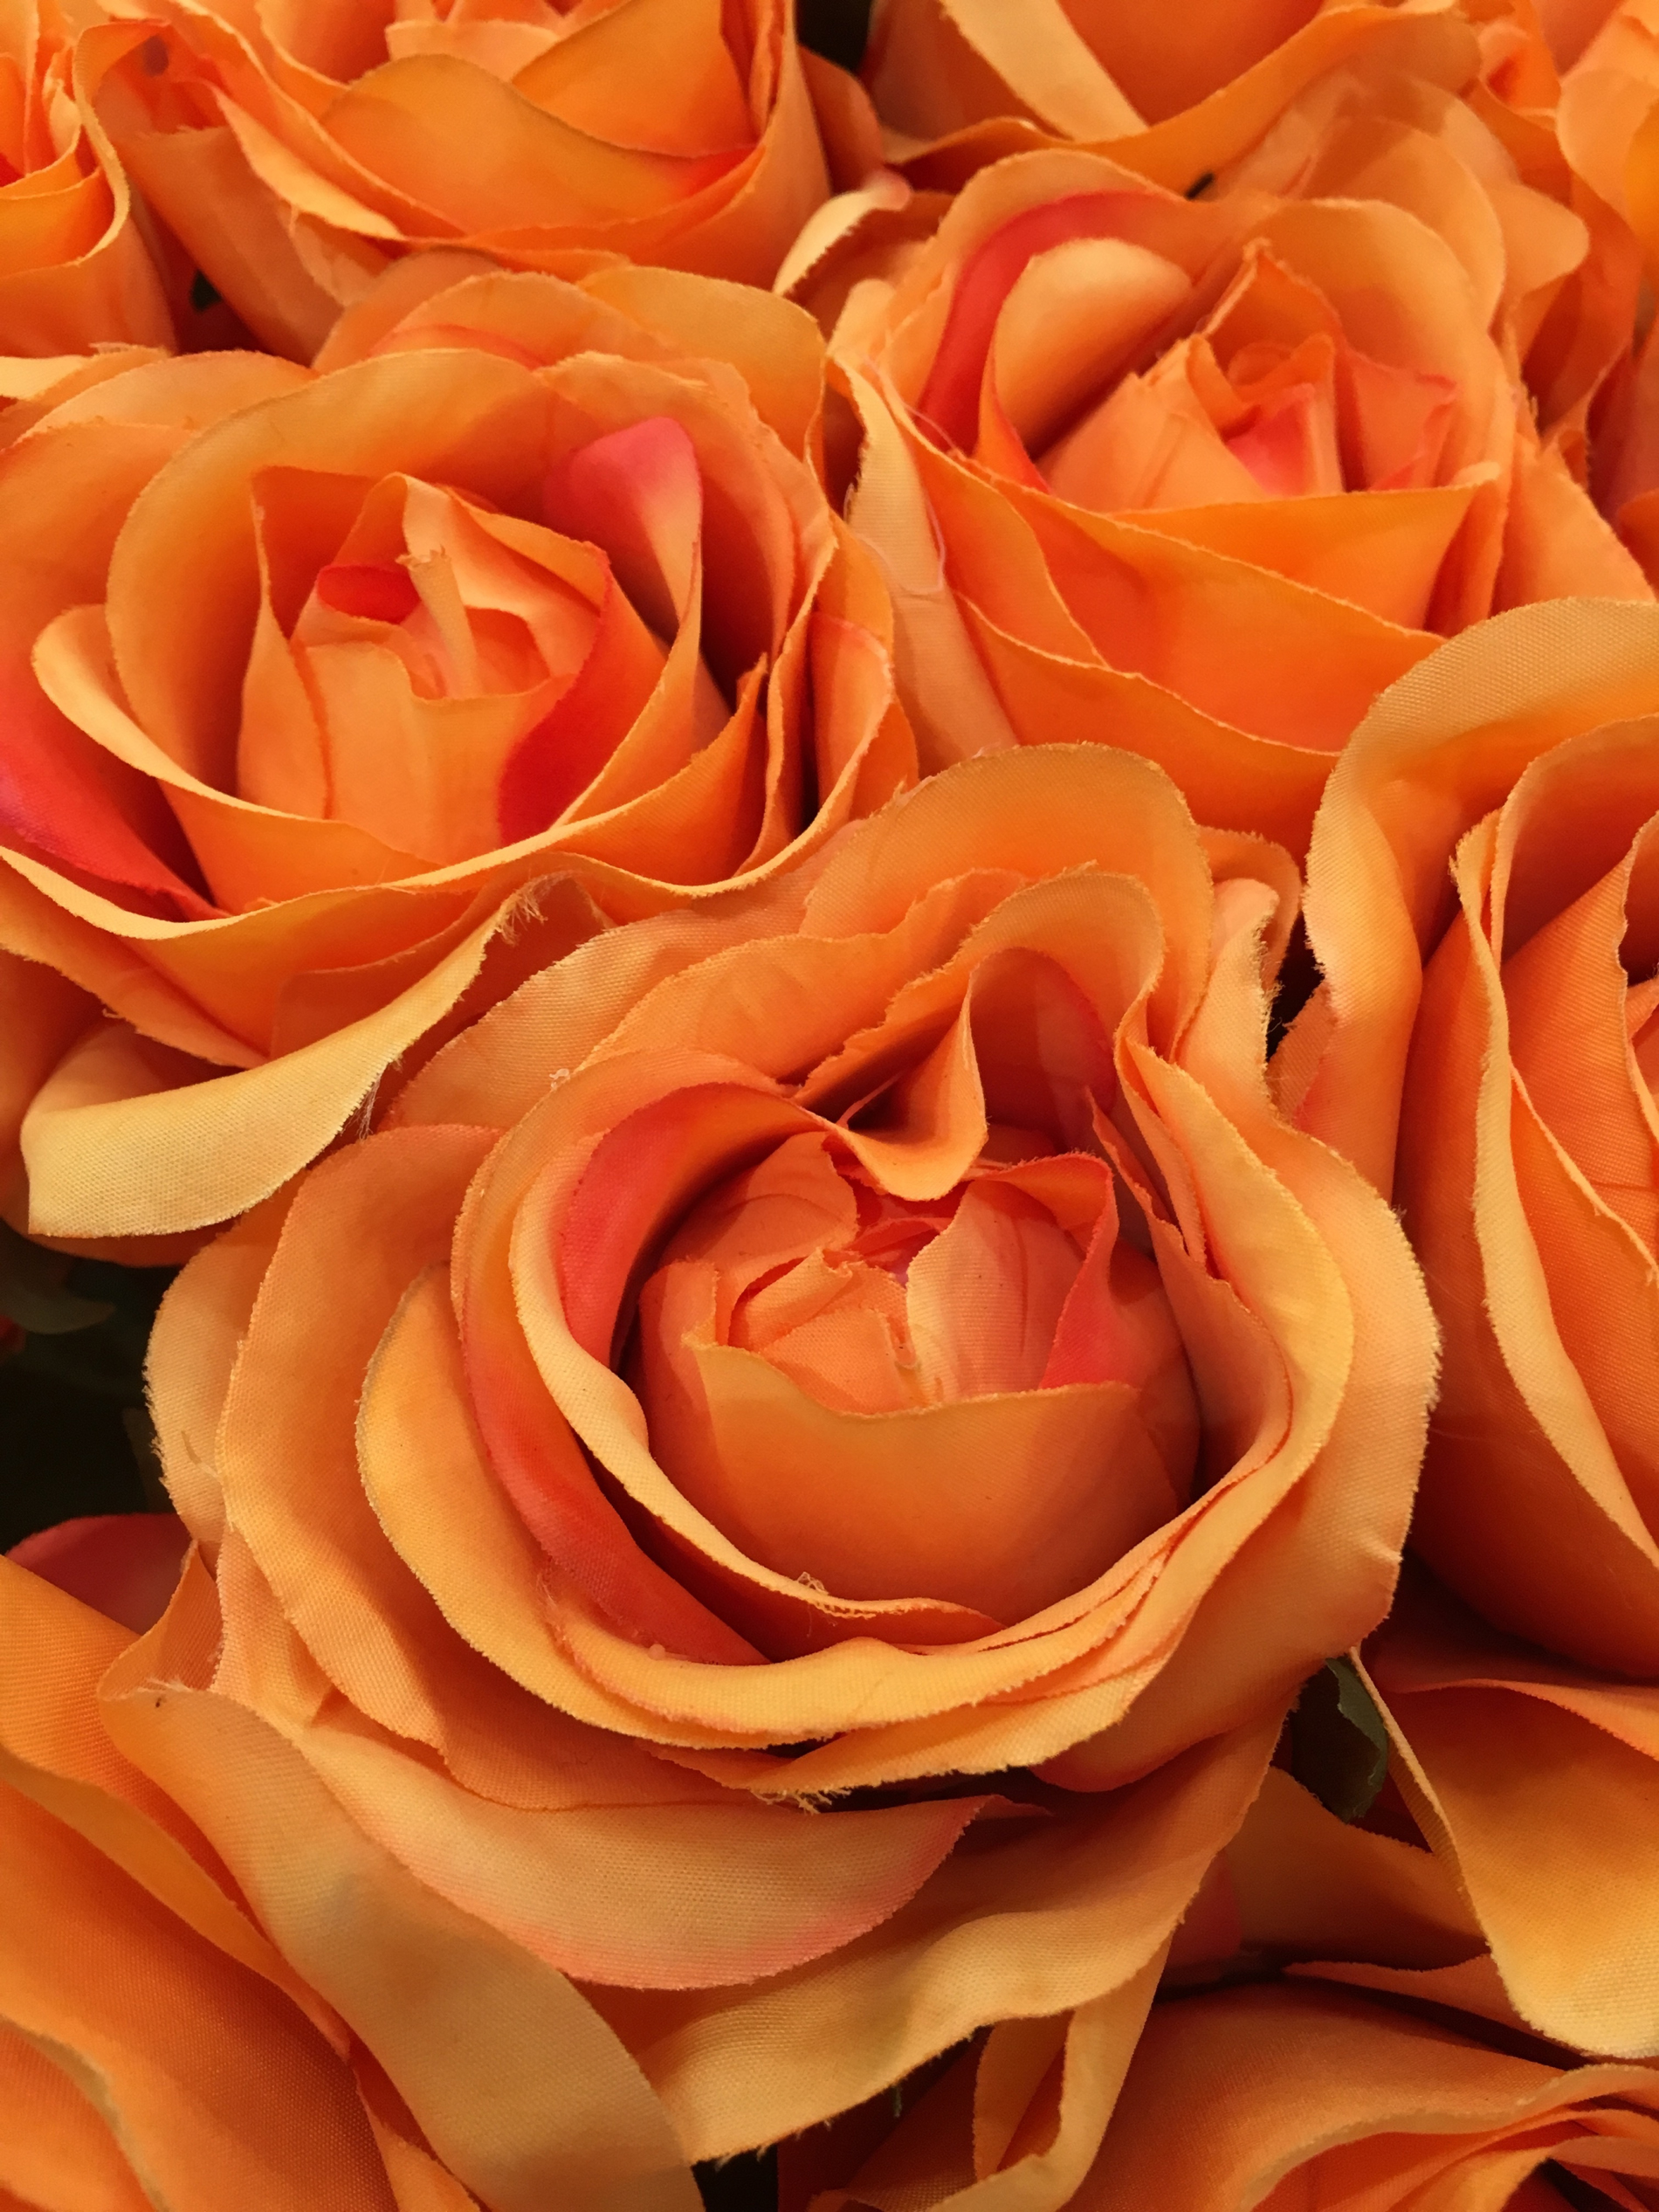 Orange roses with close-range photogrammetry 52714